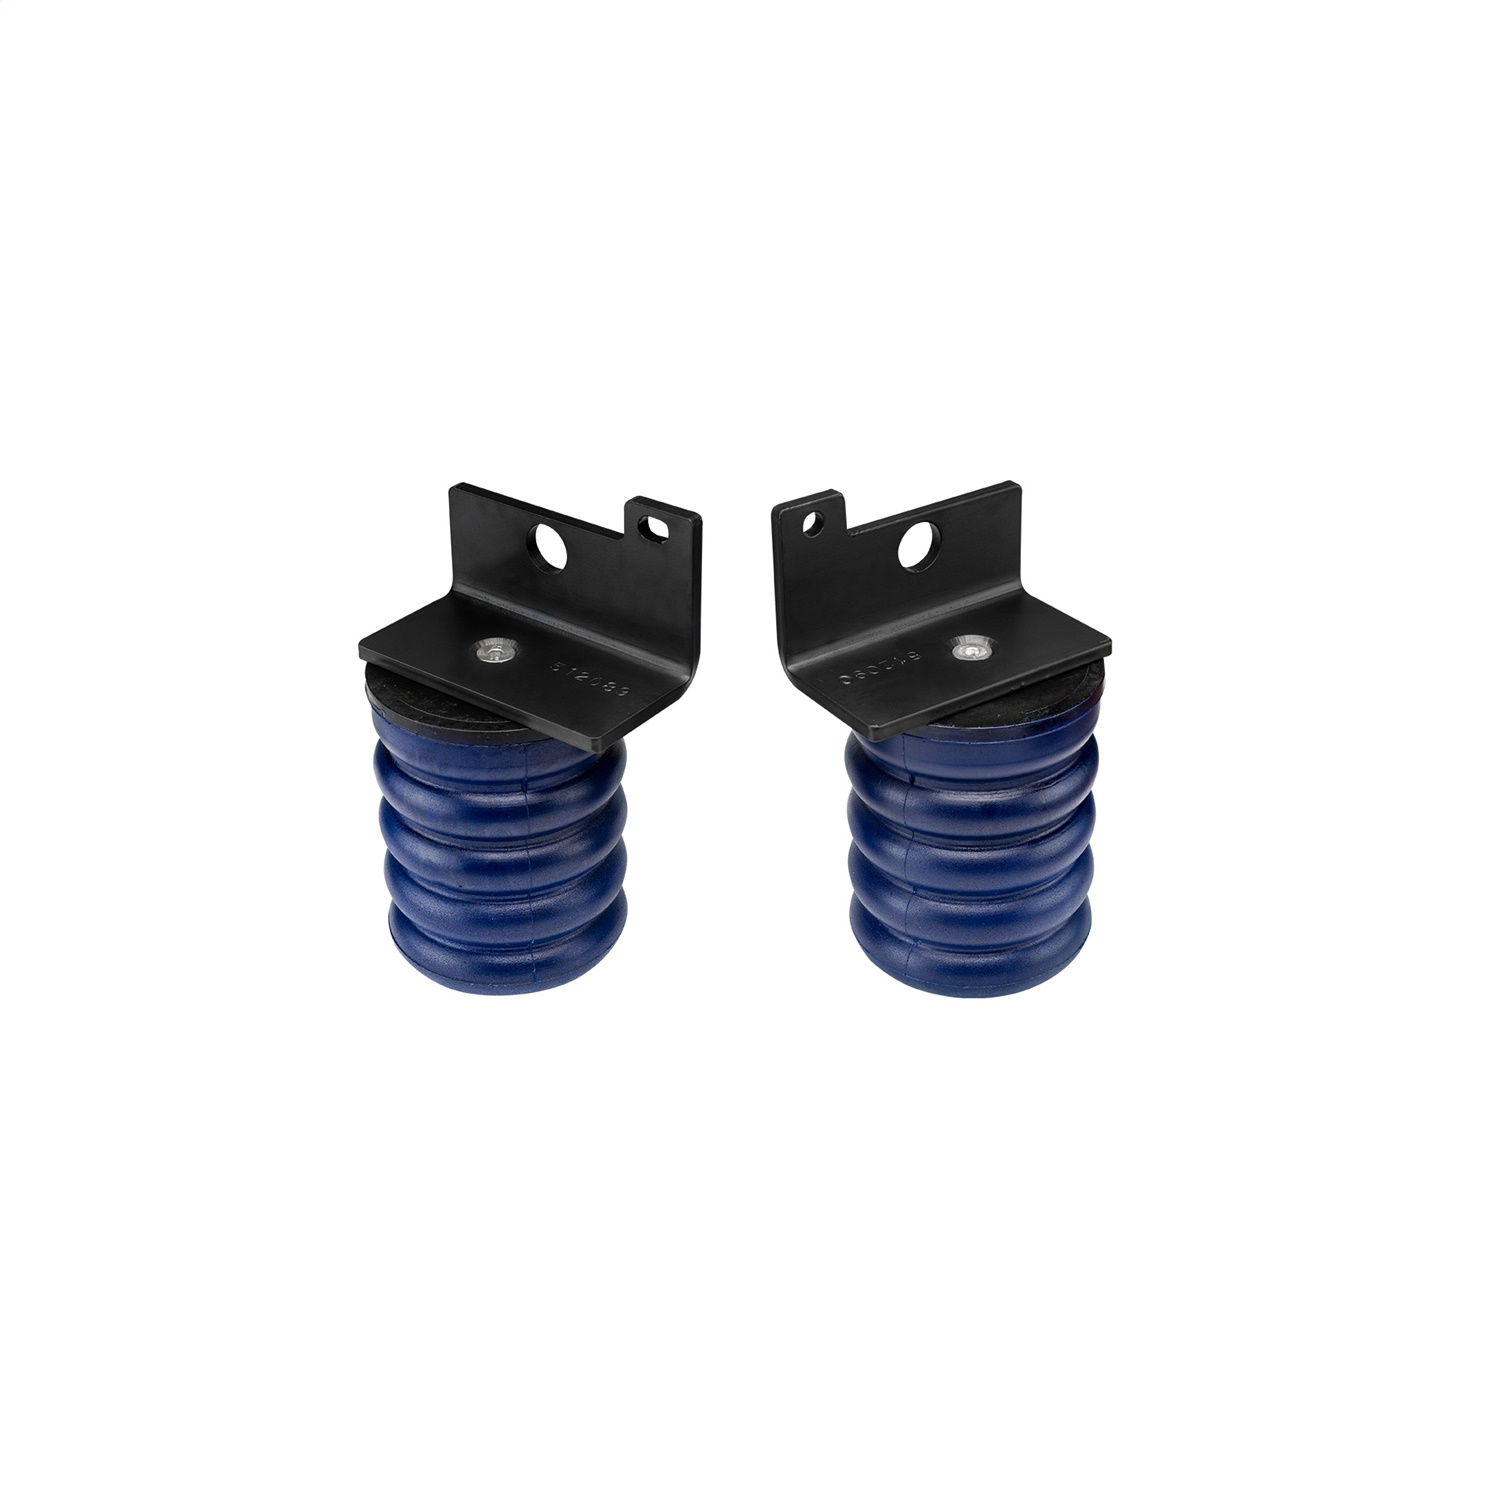 SumoSprings, Solo Kits Are Replacements To Factory Bump Stops, Capacity 1000 lbs. At 50 Percent Compression, Do Not Exceed GVWR, No Drill Required